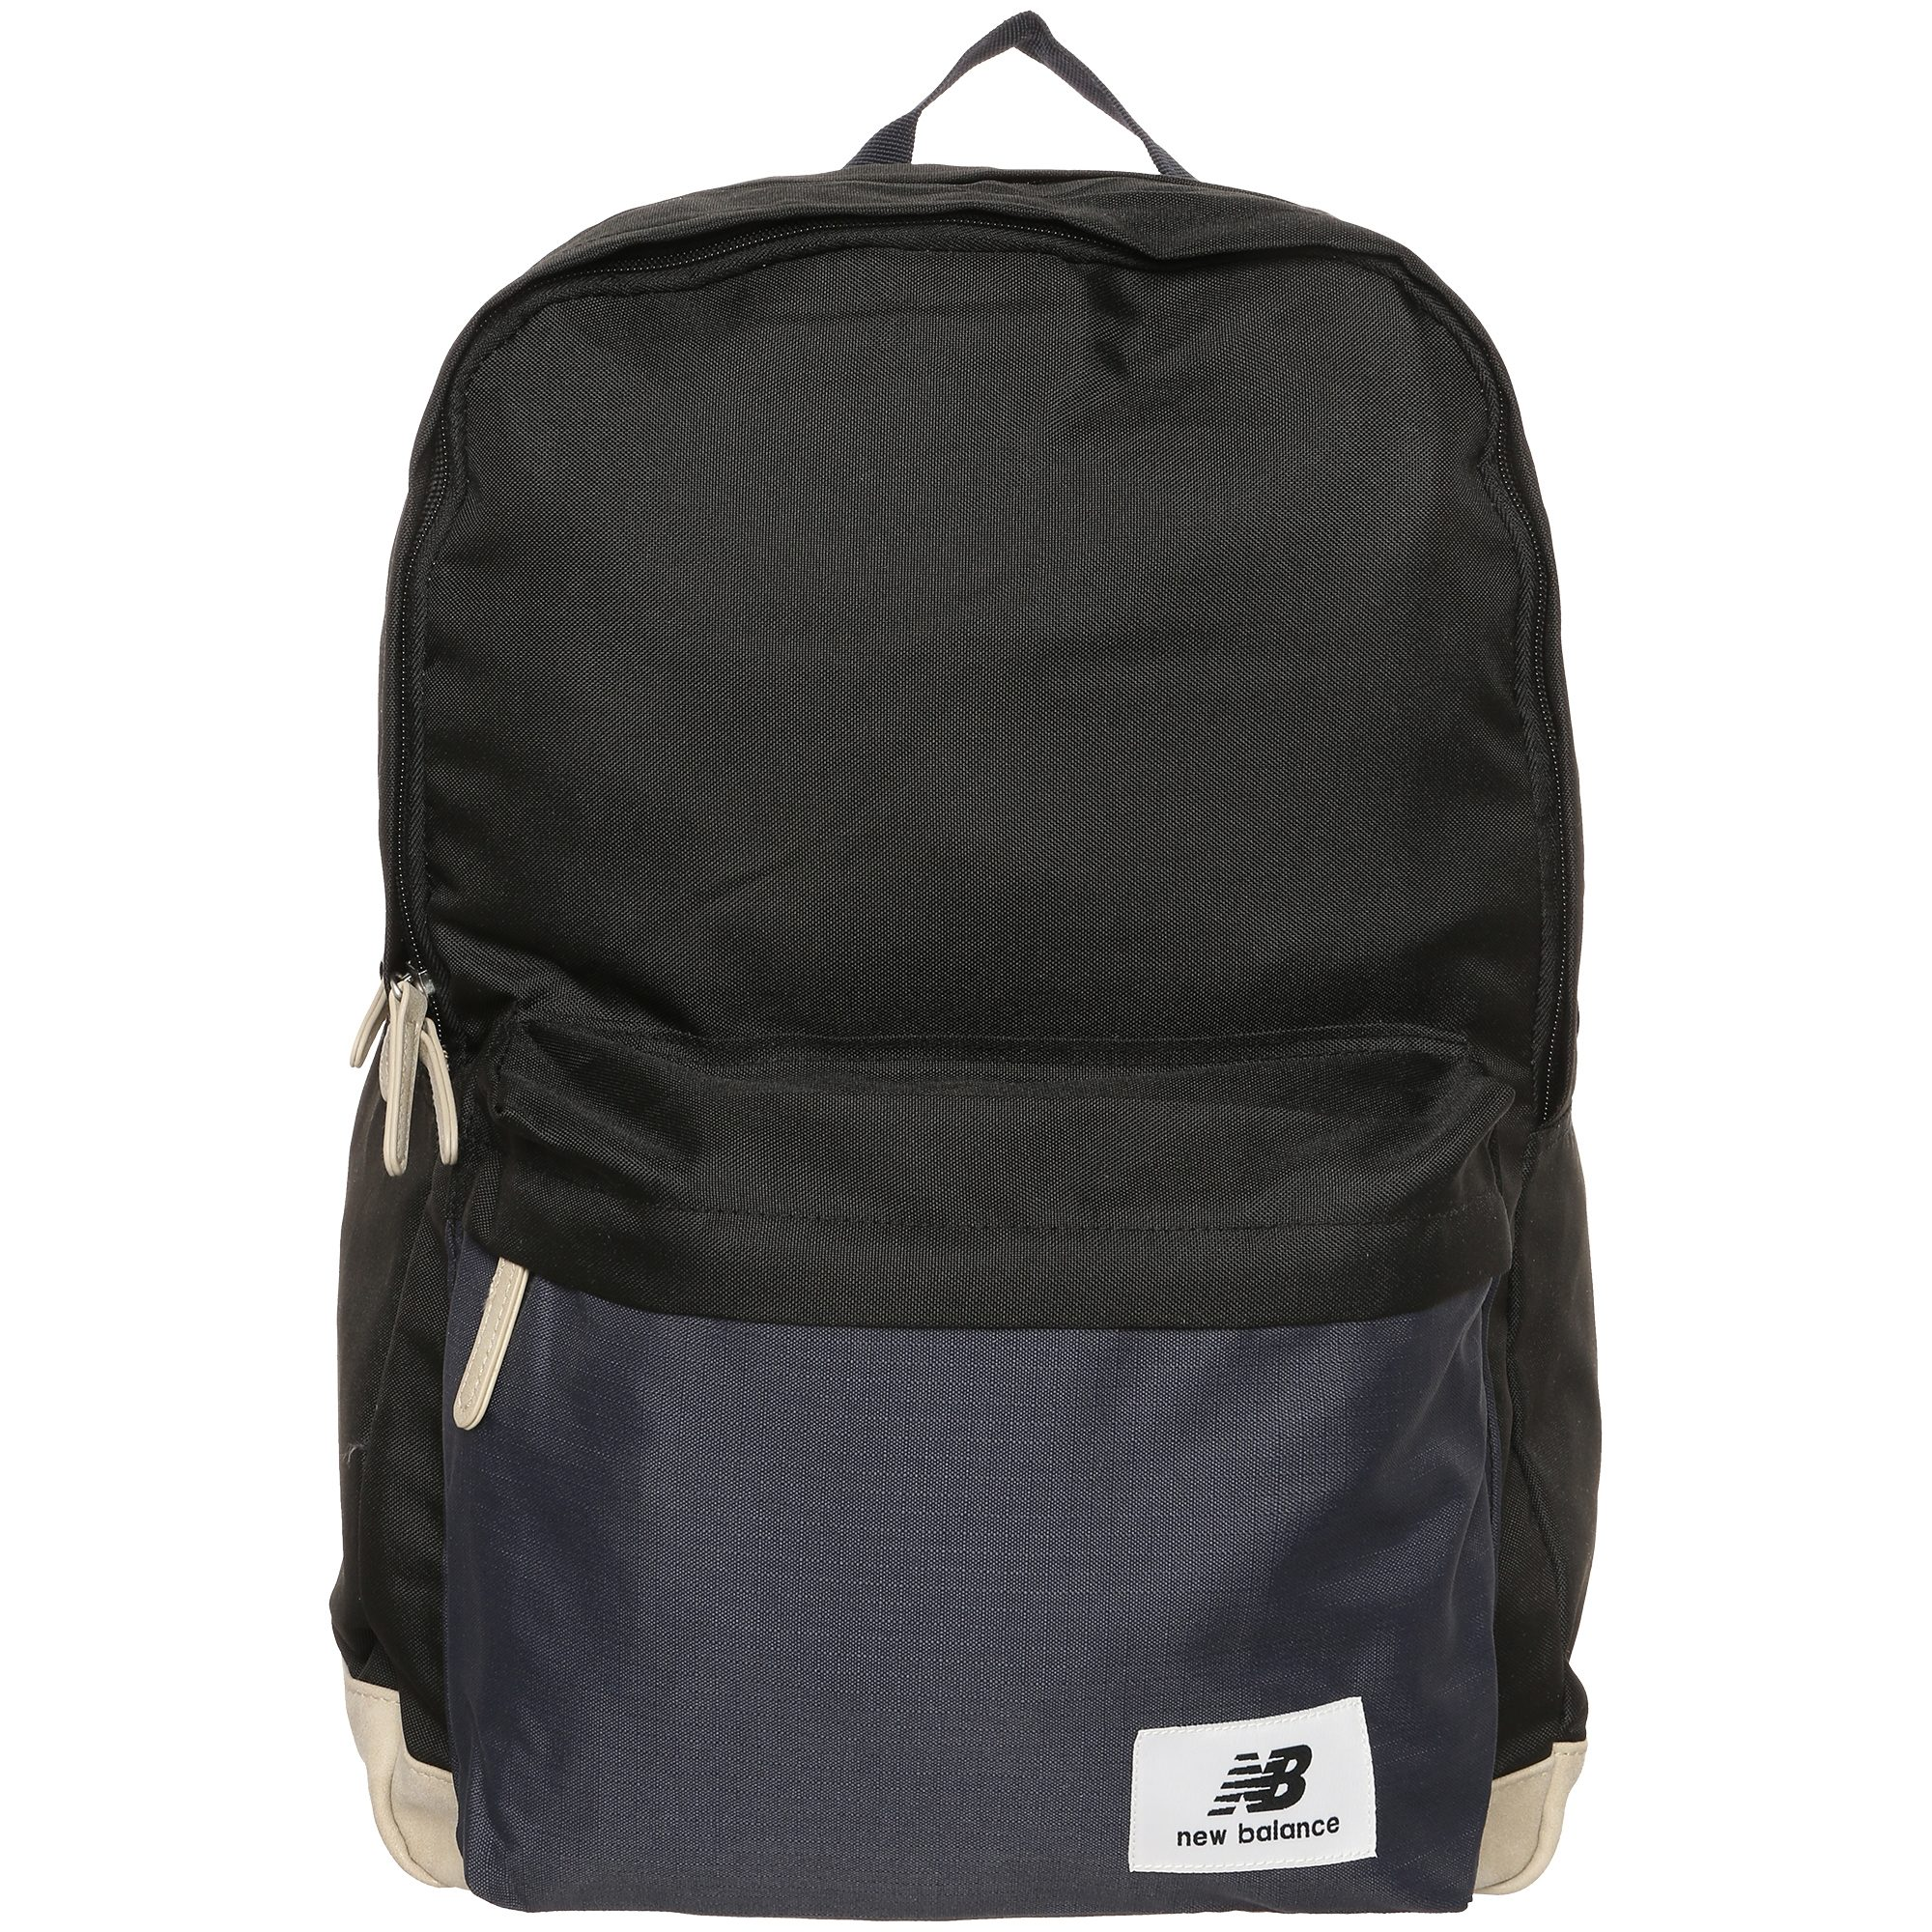 NEW BALANCE Ascent NBSS1550 Rucksack